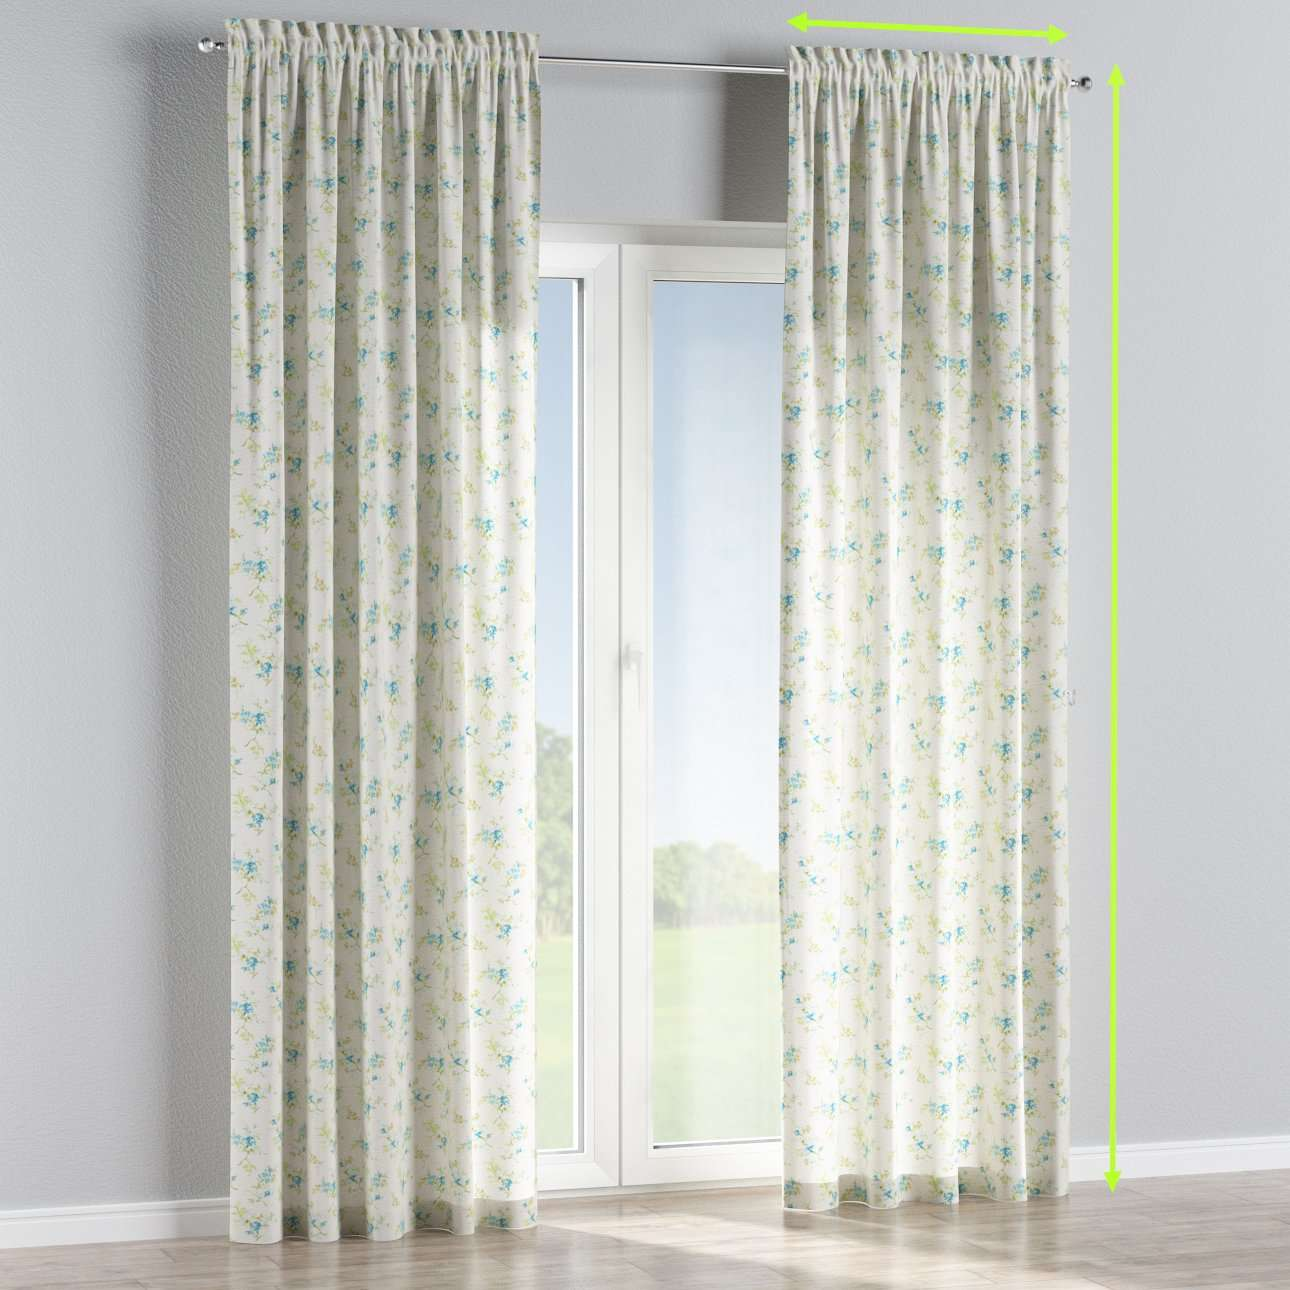 Slot and frill curtains in collection Mirella, fabric: 141-16